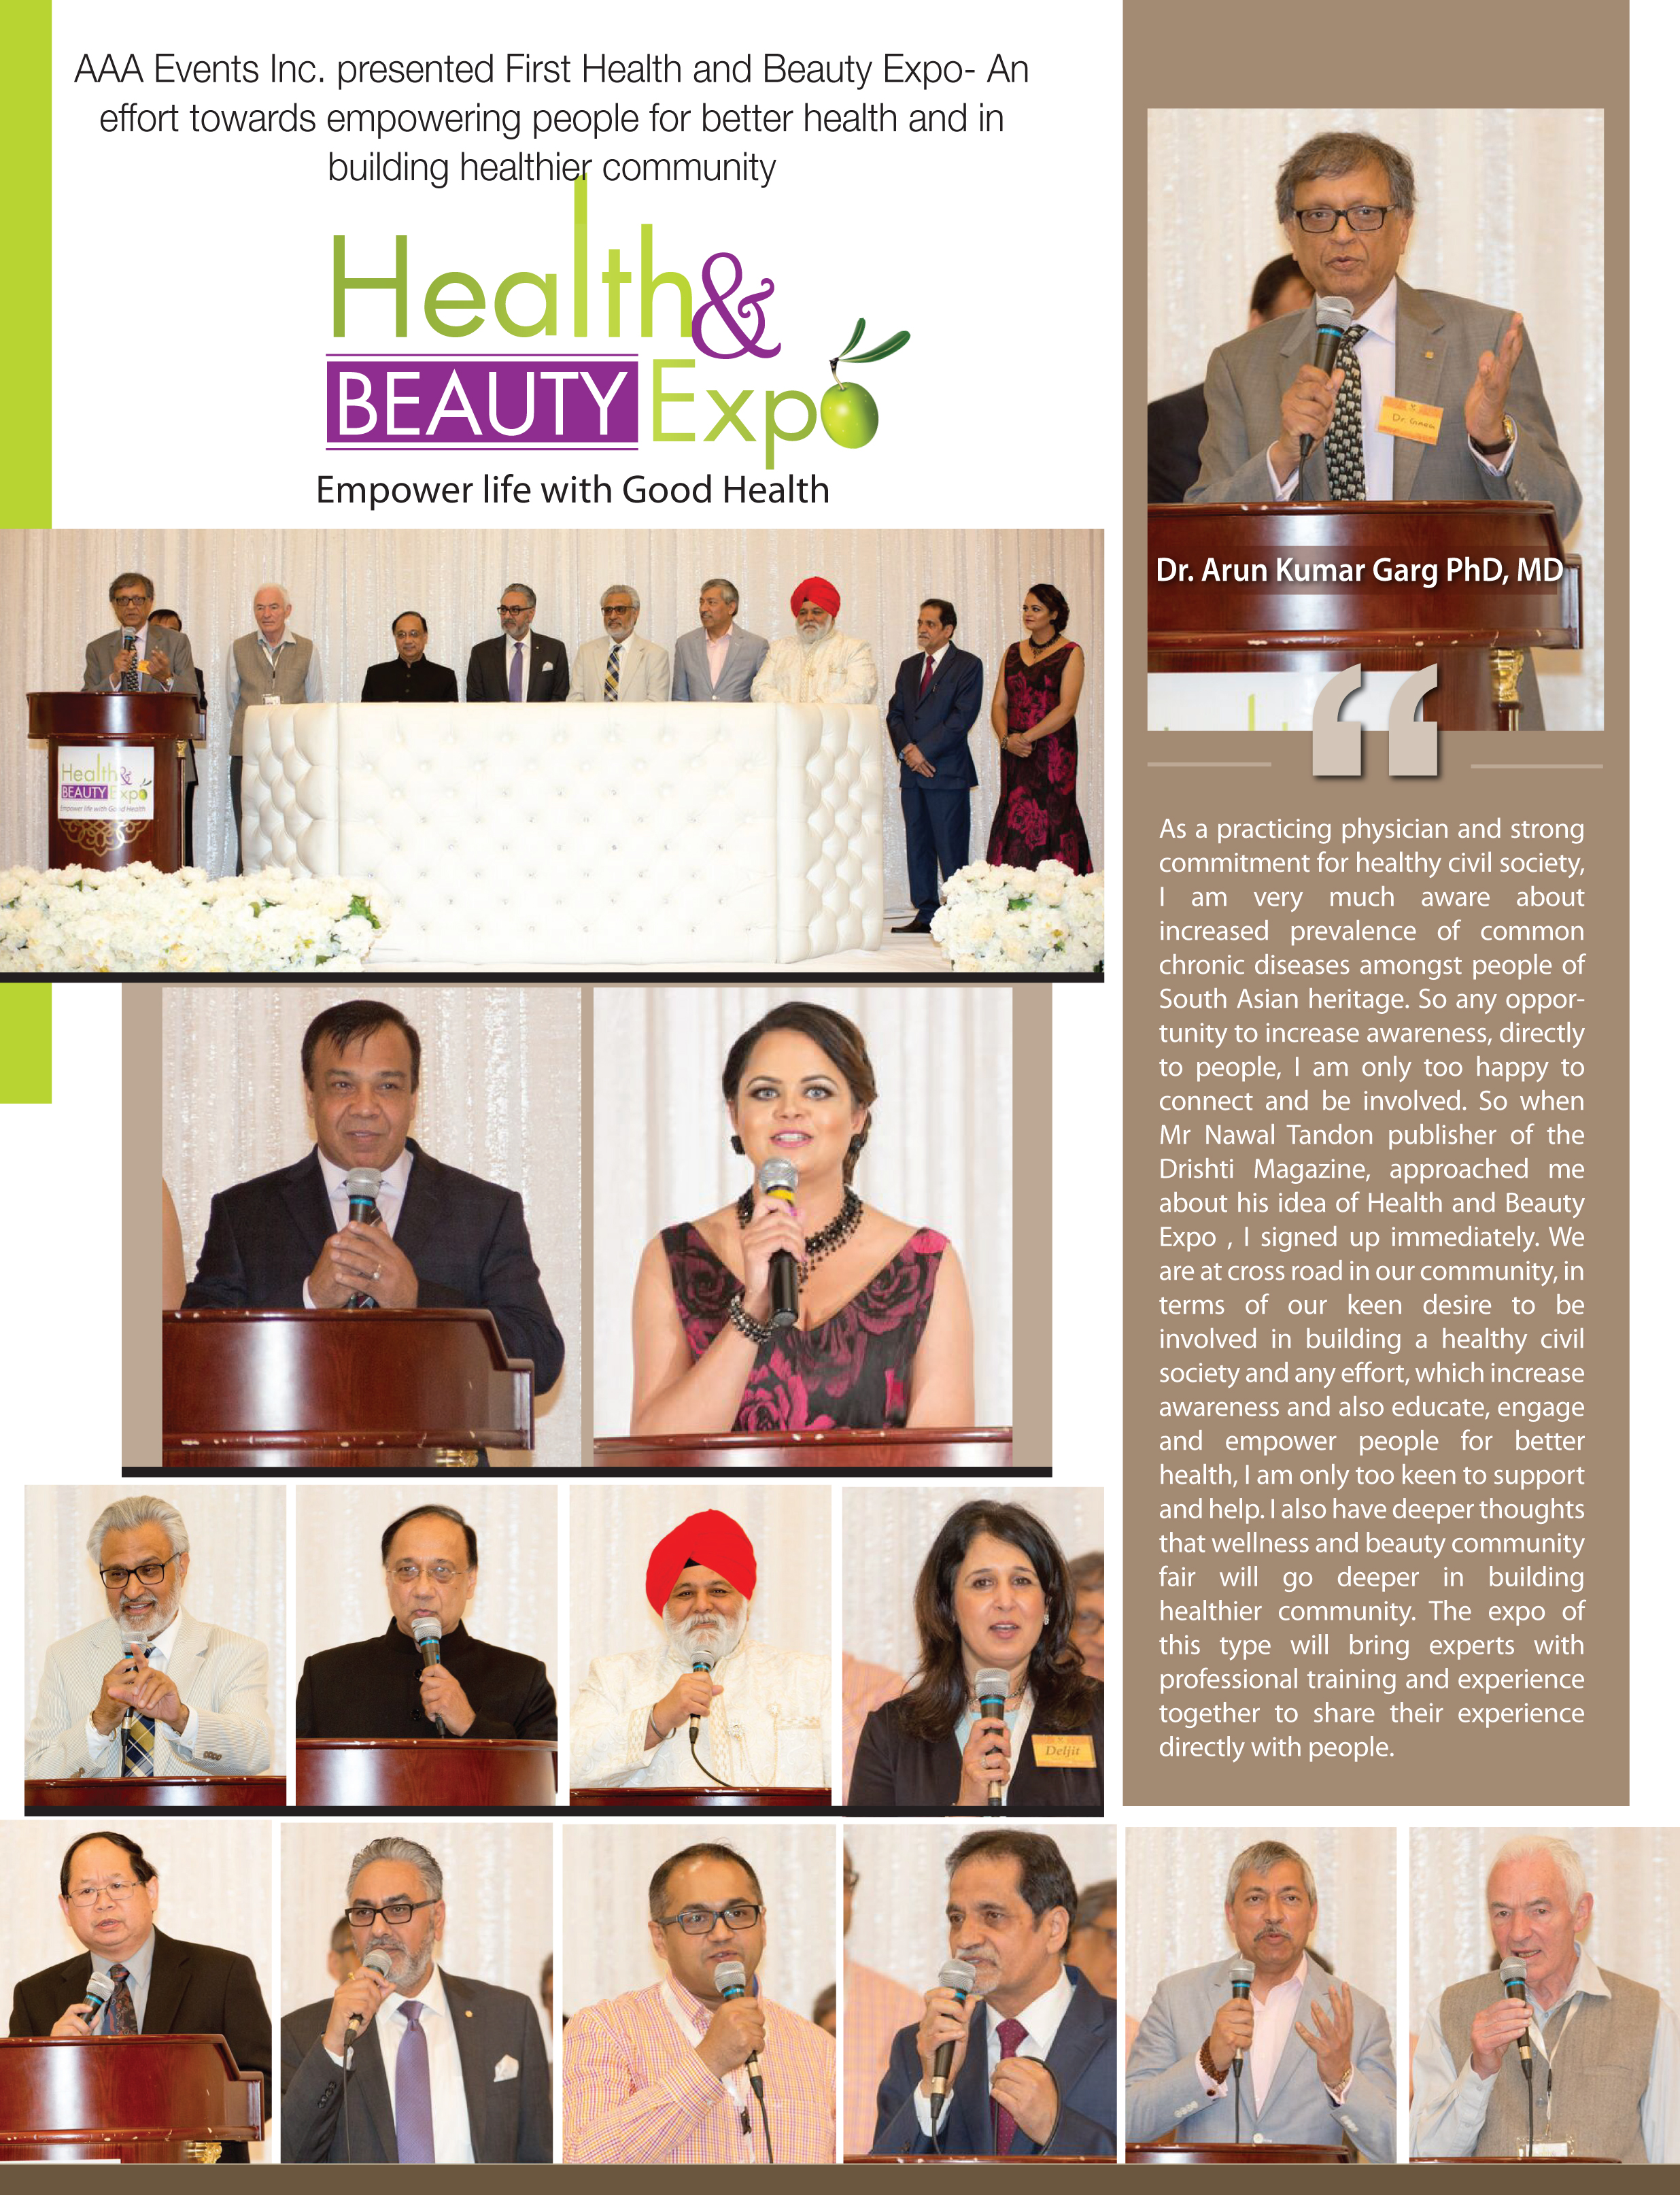 Health & Beauty Expo